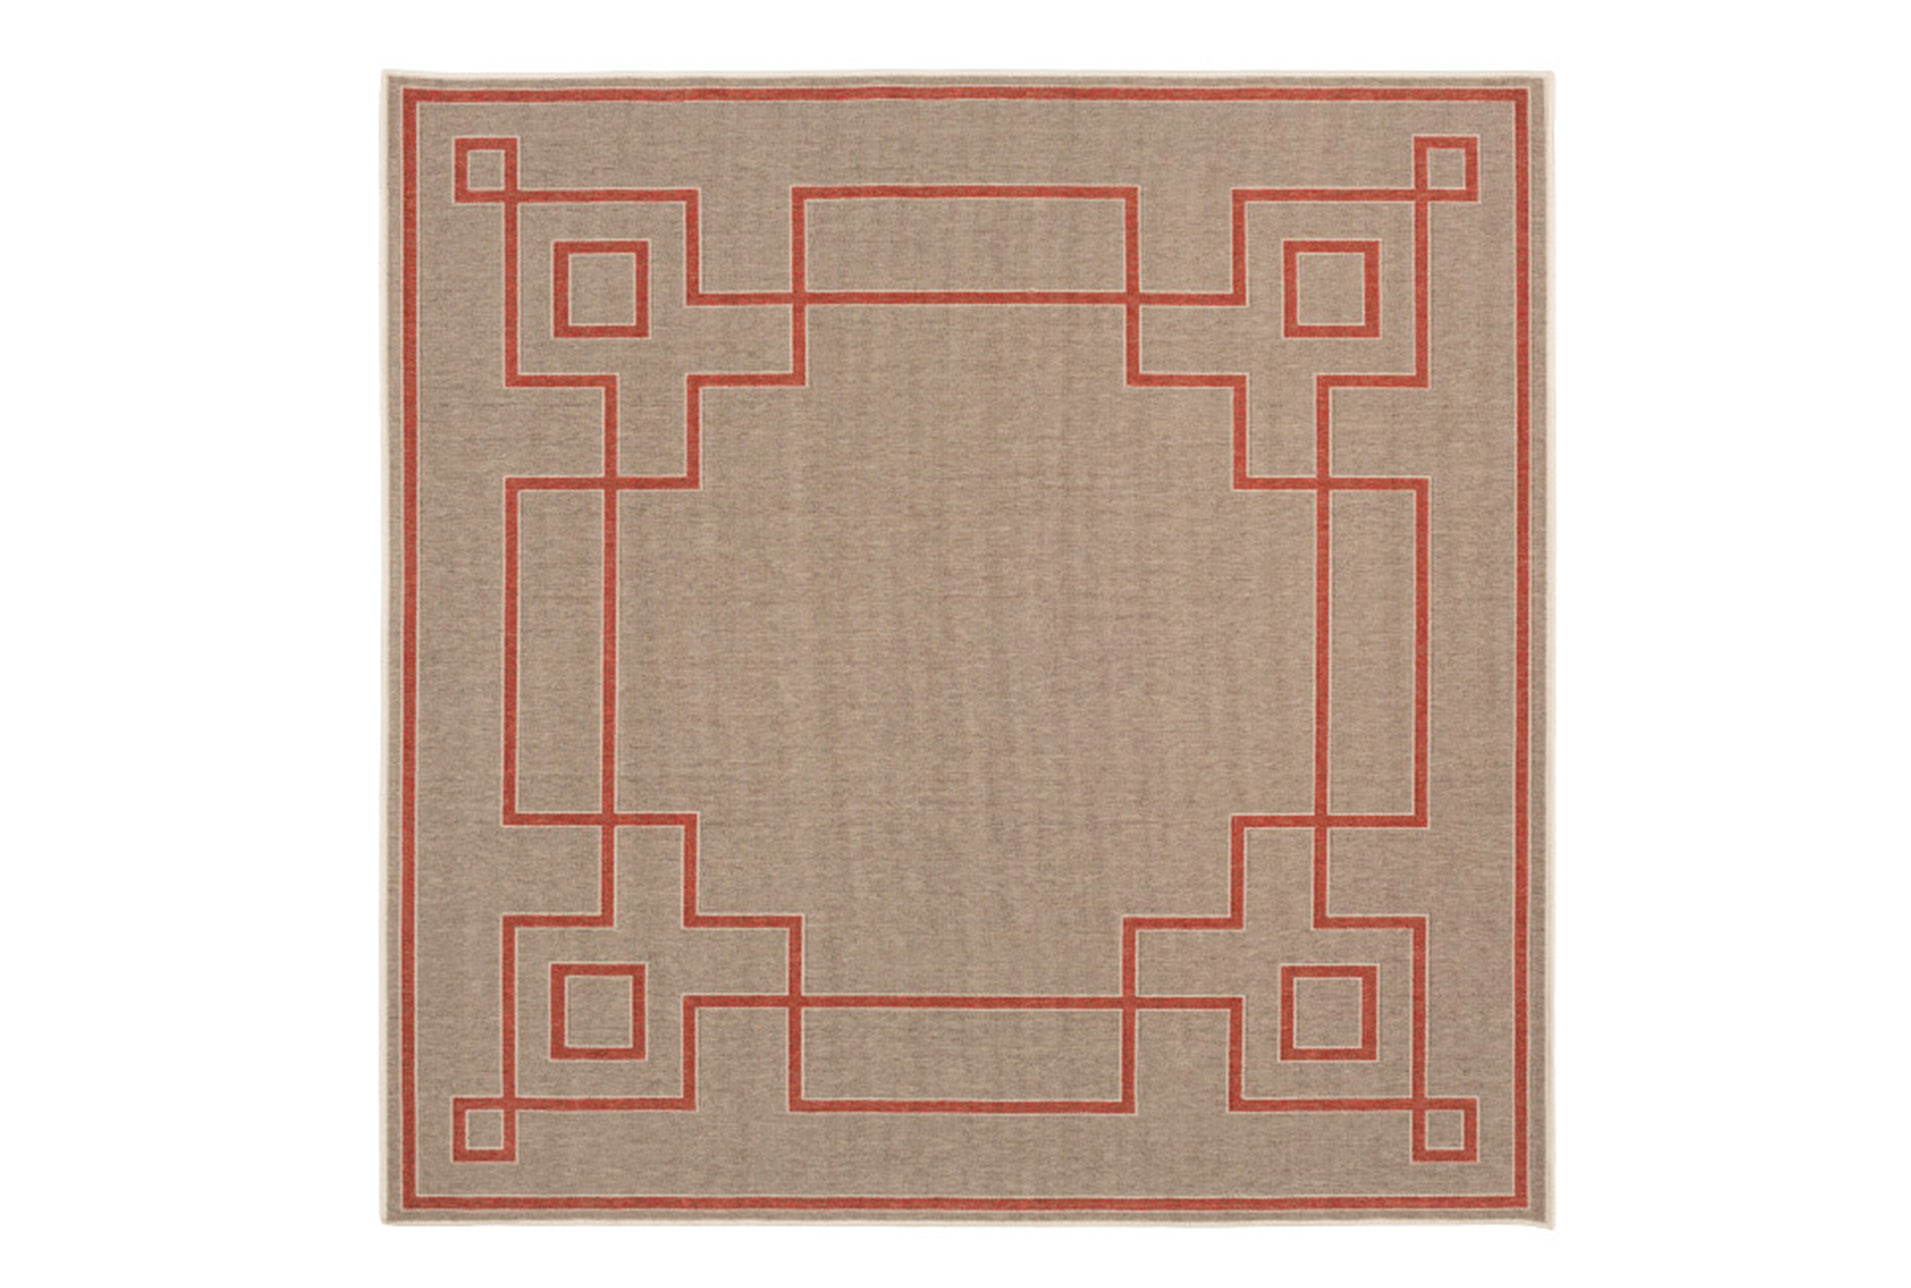 Picture of: 87×87 Square Outdoor Rug Greek Key Border Natural Poppy Living Spaces